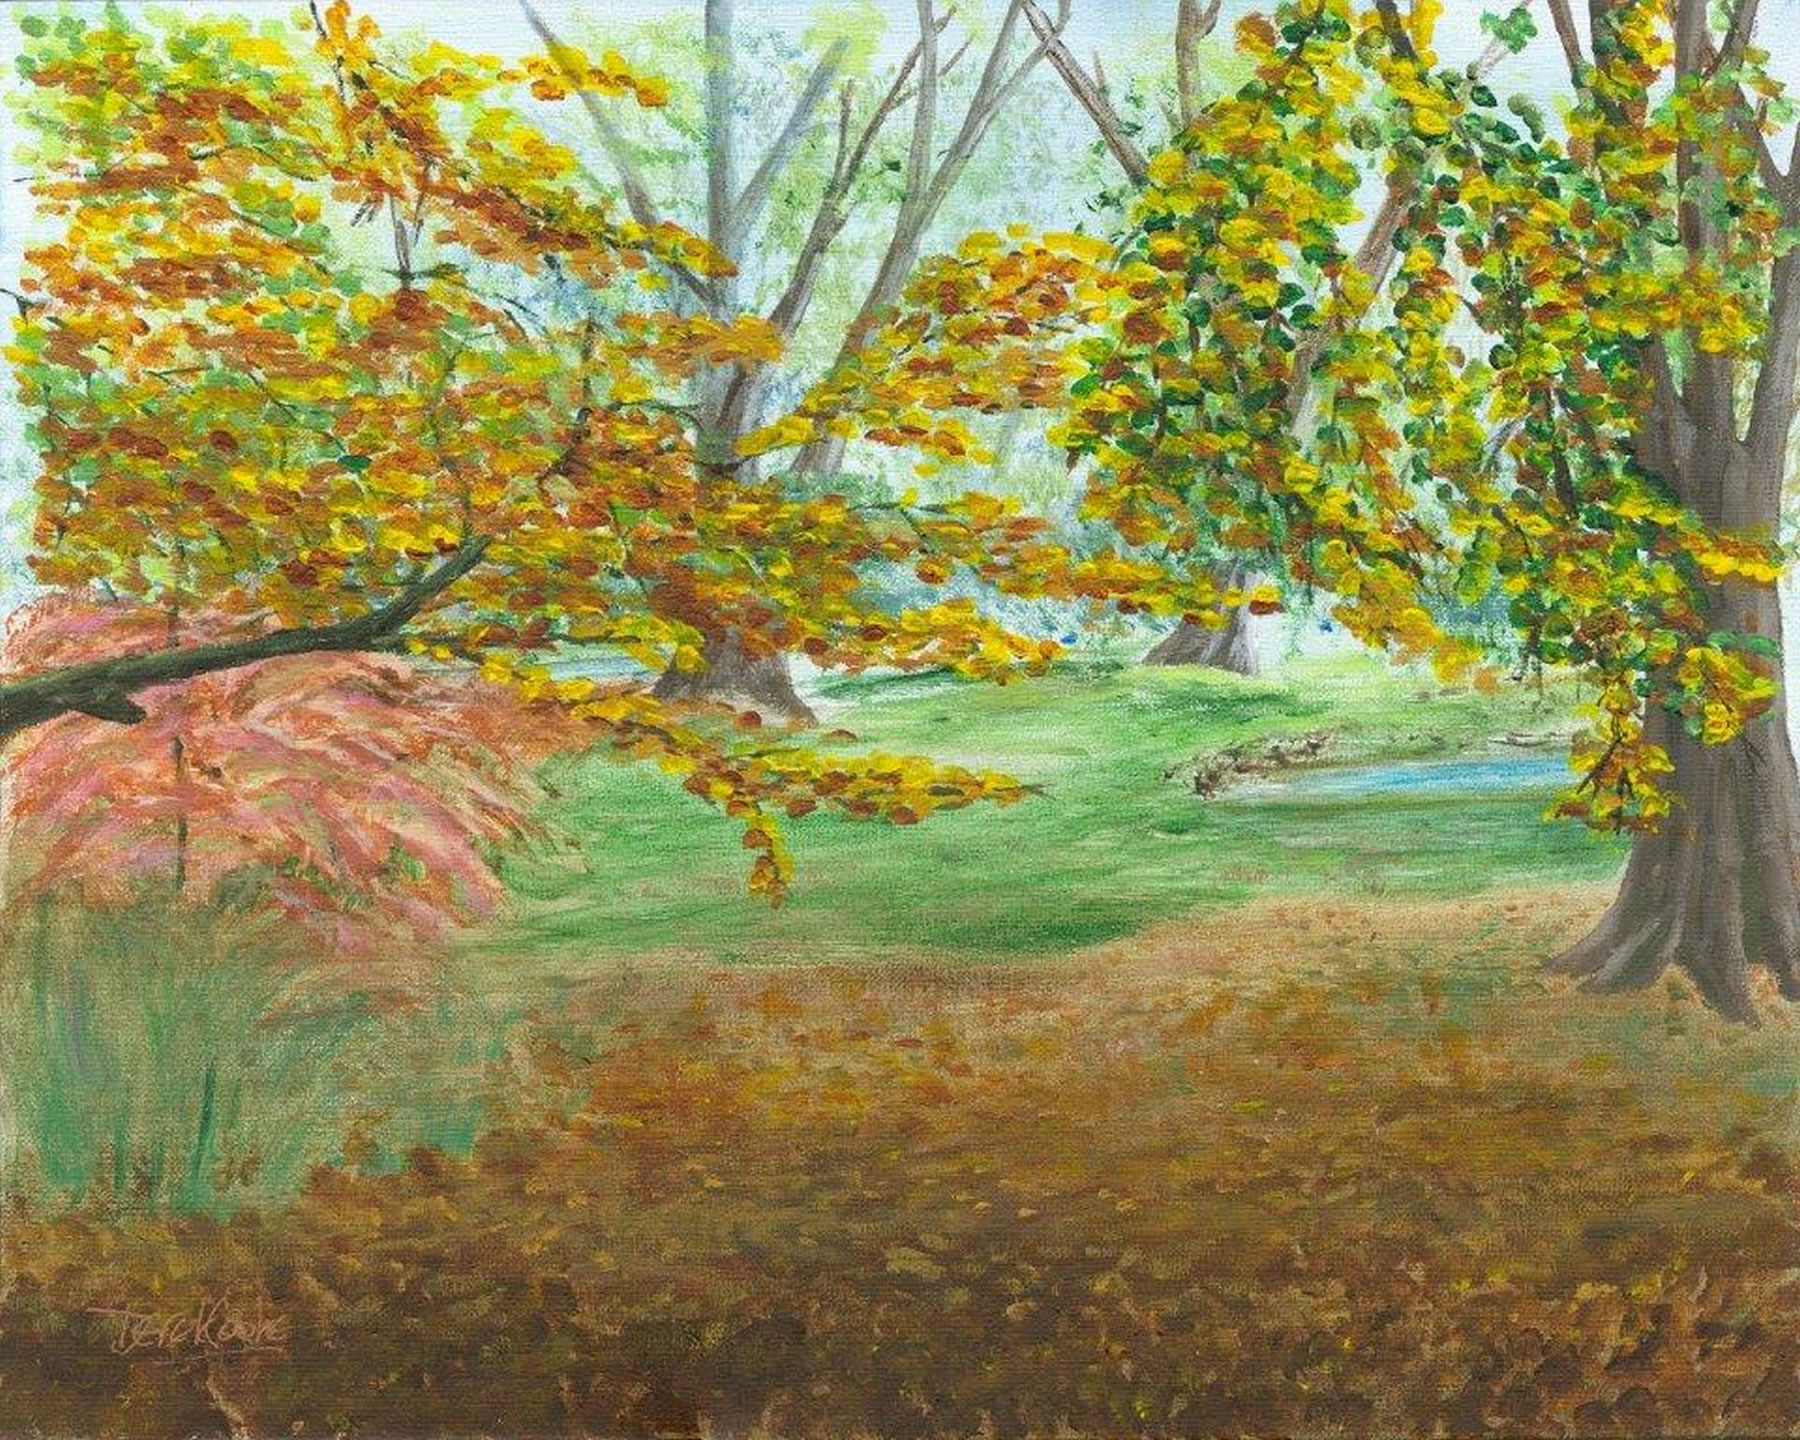 Woodlands Art Print - Peaceful Glade